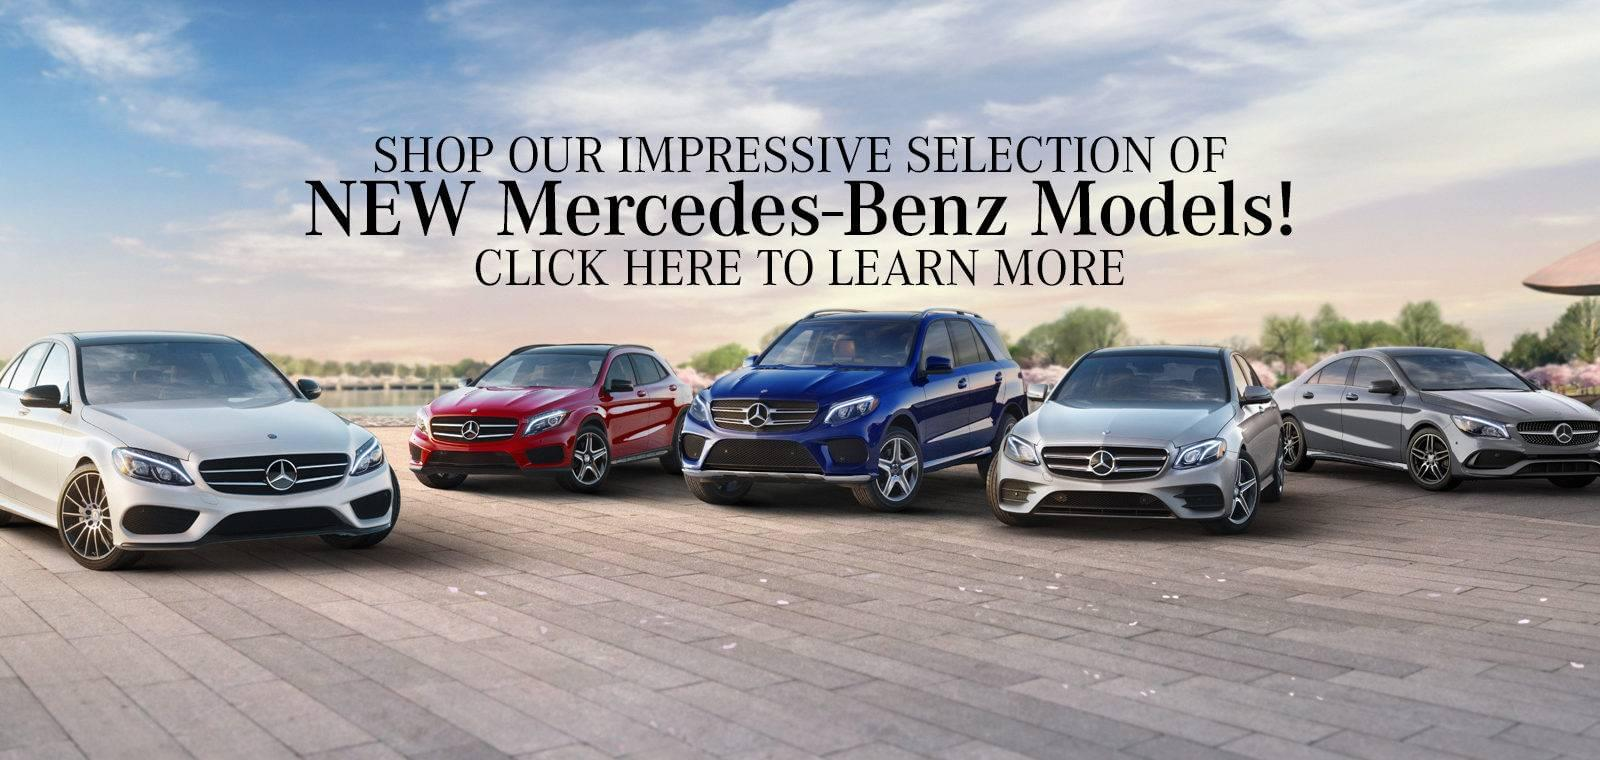 Neil Huffman Chevy >> Volkswagen Dealership Louisville Ky | 2017, 2018, 2019 Volkswagen Reviews